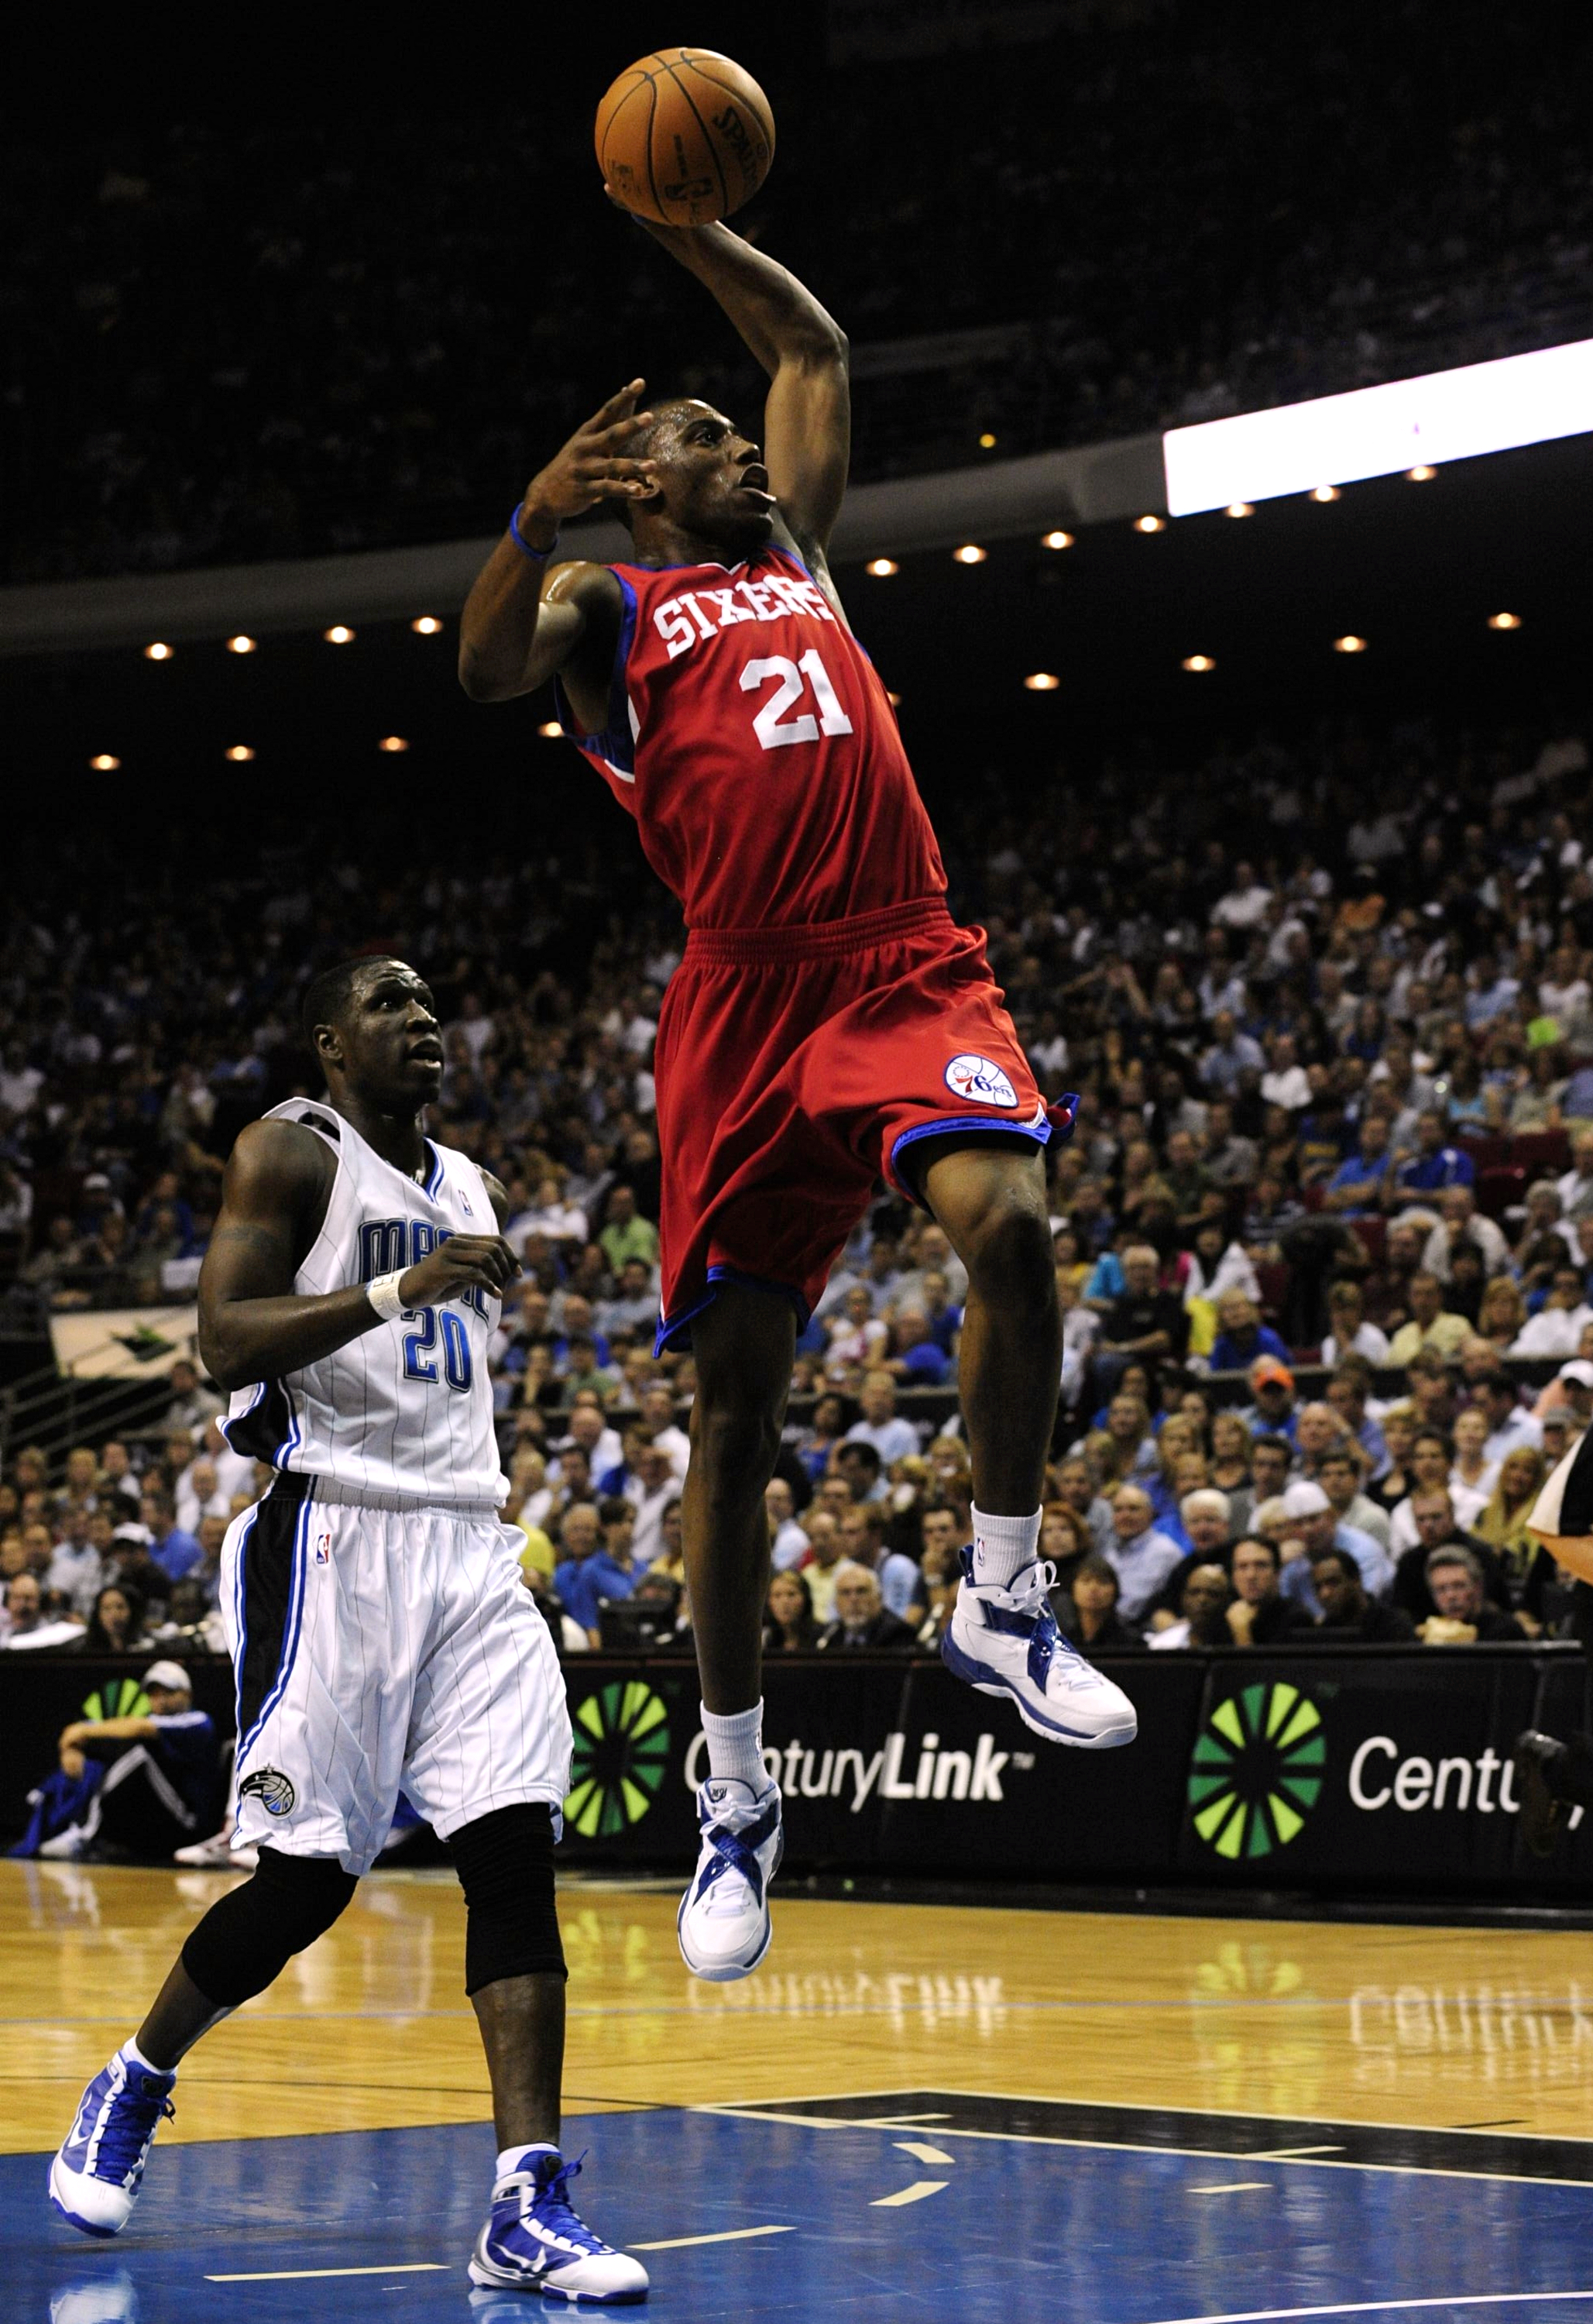 ORLANDO, FL - OCTOBER 28:  Thaddeus Young #21 of the Philadelphia 76ers goes to the basket over Mickael Pietrus #20 of the Orlando Magic during the game on October 28, 2009 at Amway Arena in Orlando, Florida.  NOTE TO USER: User expressly acknowledges and